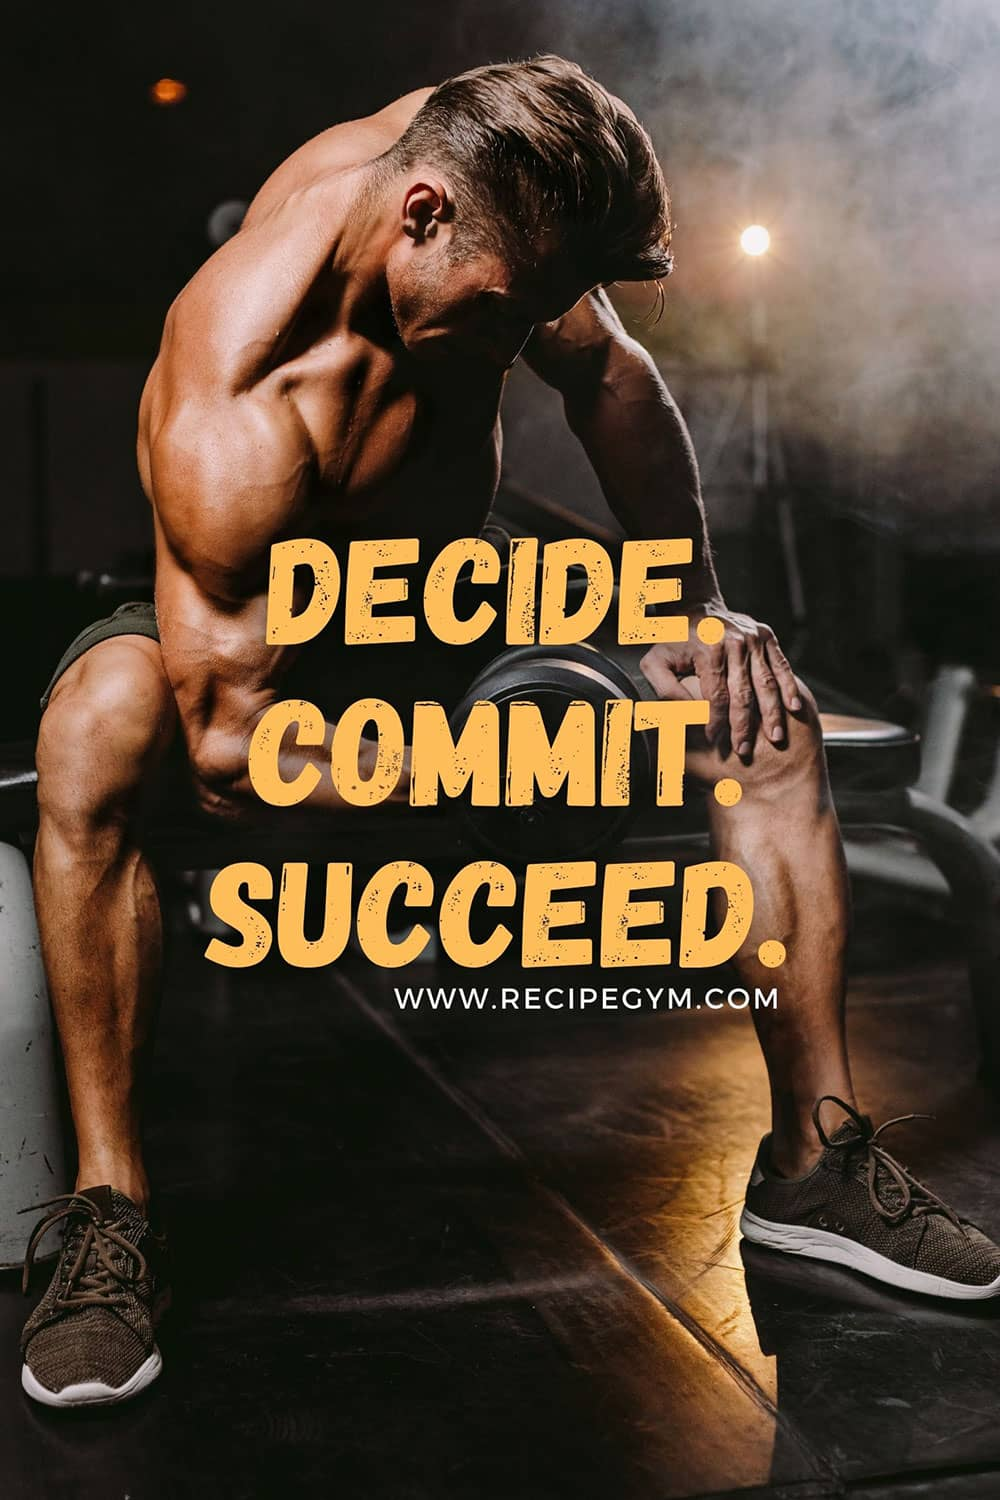 40 Best Gym Quotes That Will Motivate You 21